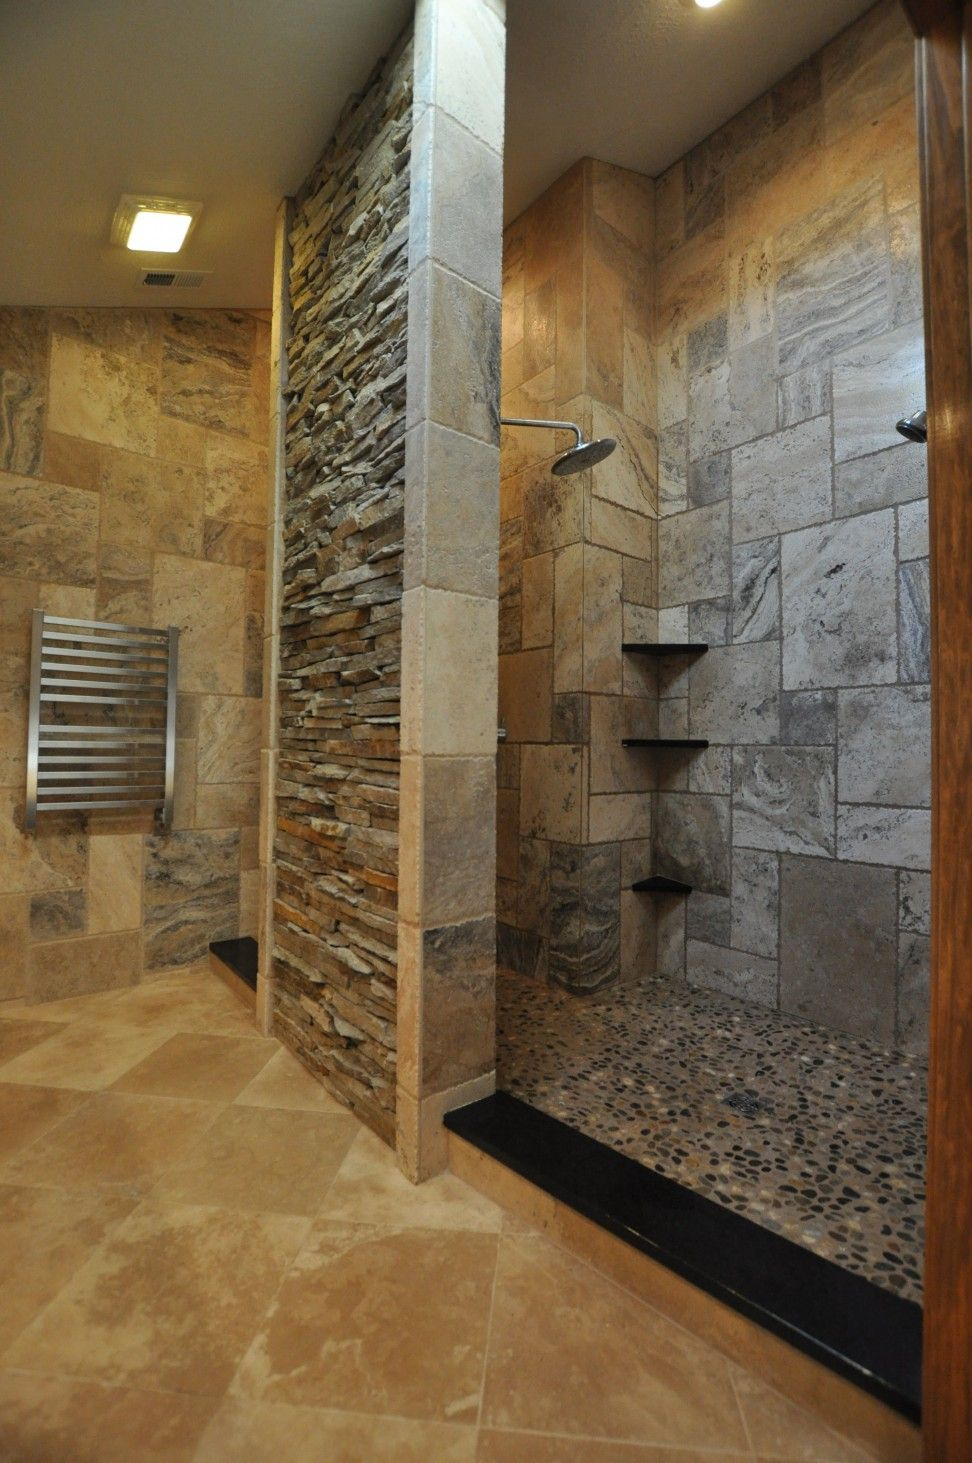 Shower Room Design Ideas And Bathroom Rug Sets Bed Bath And Beyond A Surprisingly Bathroom Design Ideas In Sensational New Home 36 B Small Bathroom Inspiration Stone Bathroom Stone Shower